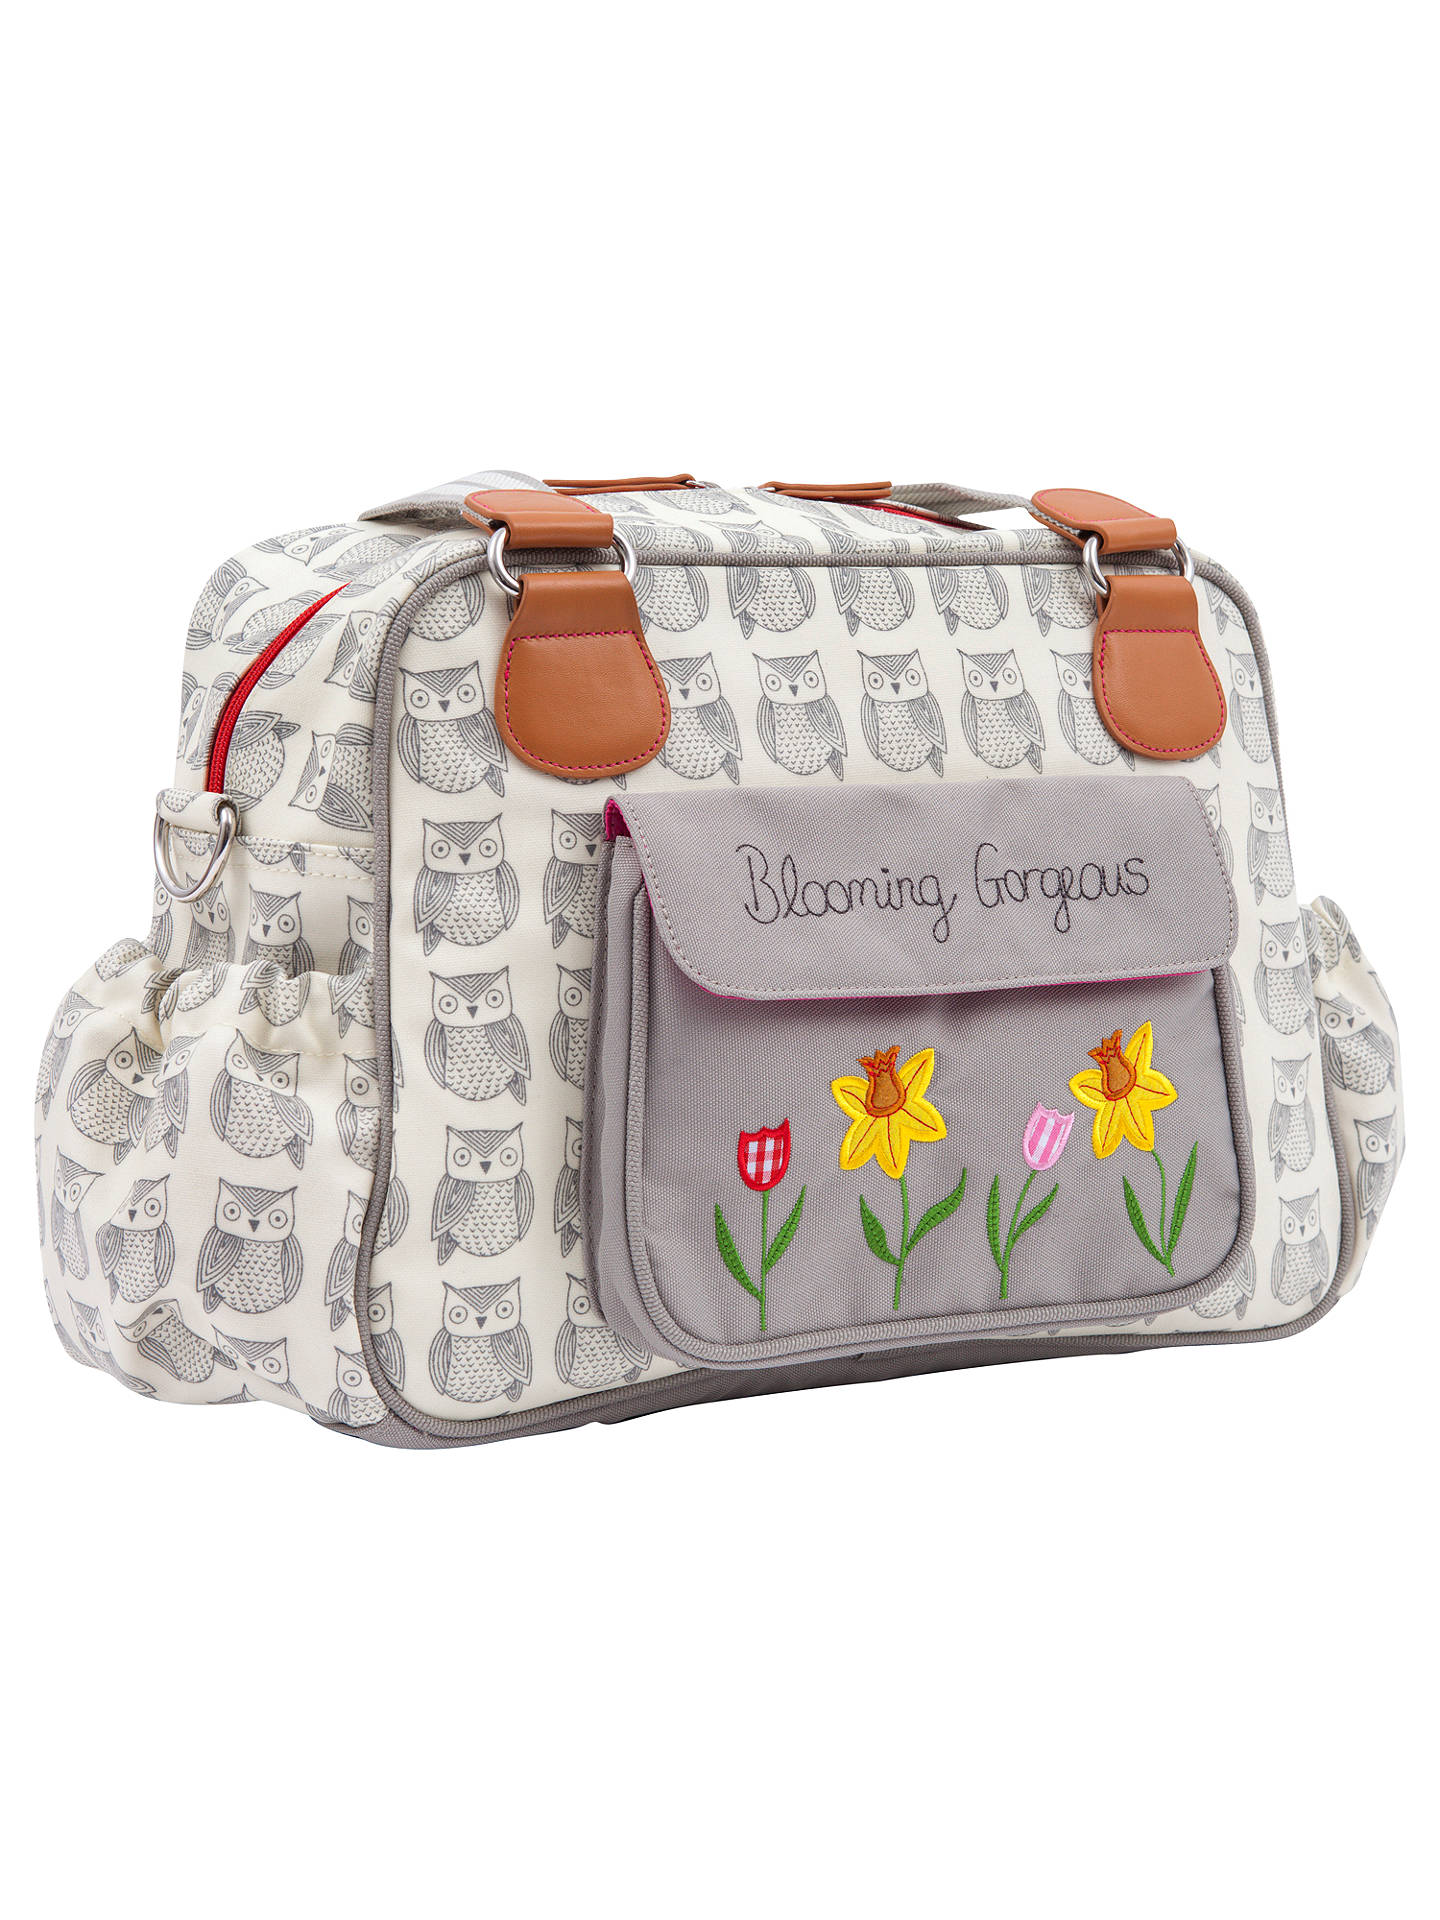 Buy Pink Lining Blooming Gorgeous Changing Bag, Wise Owl Online at johnlewis.com